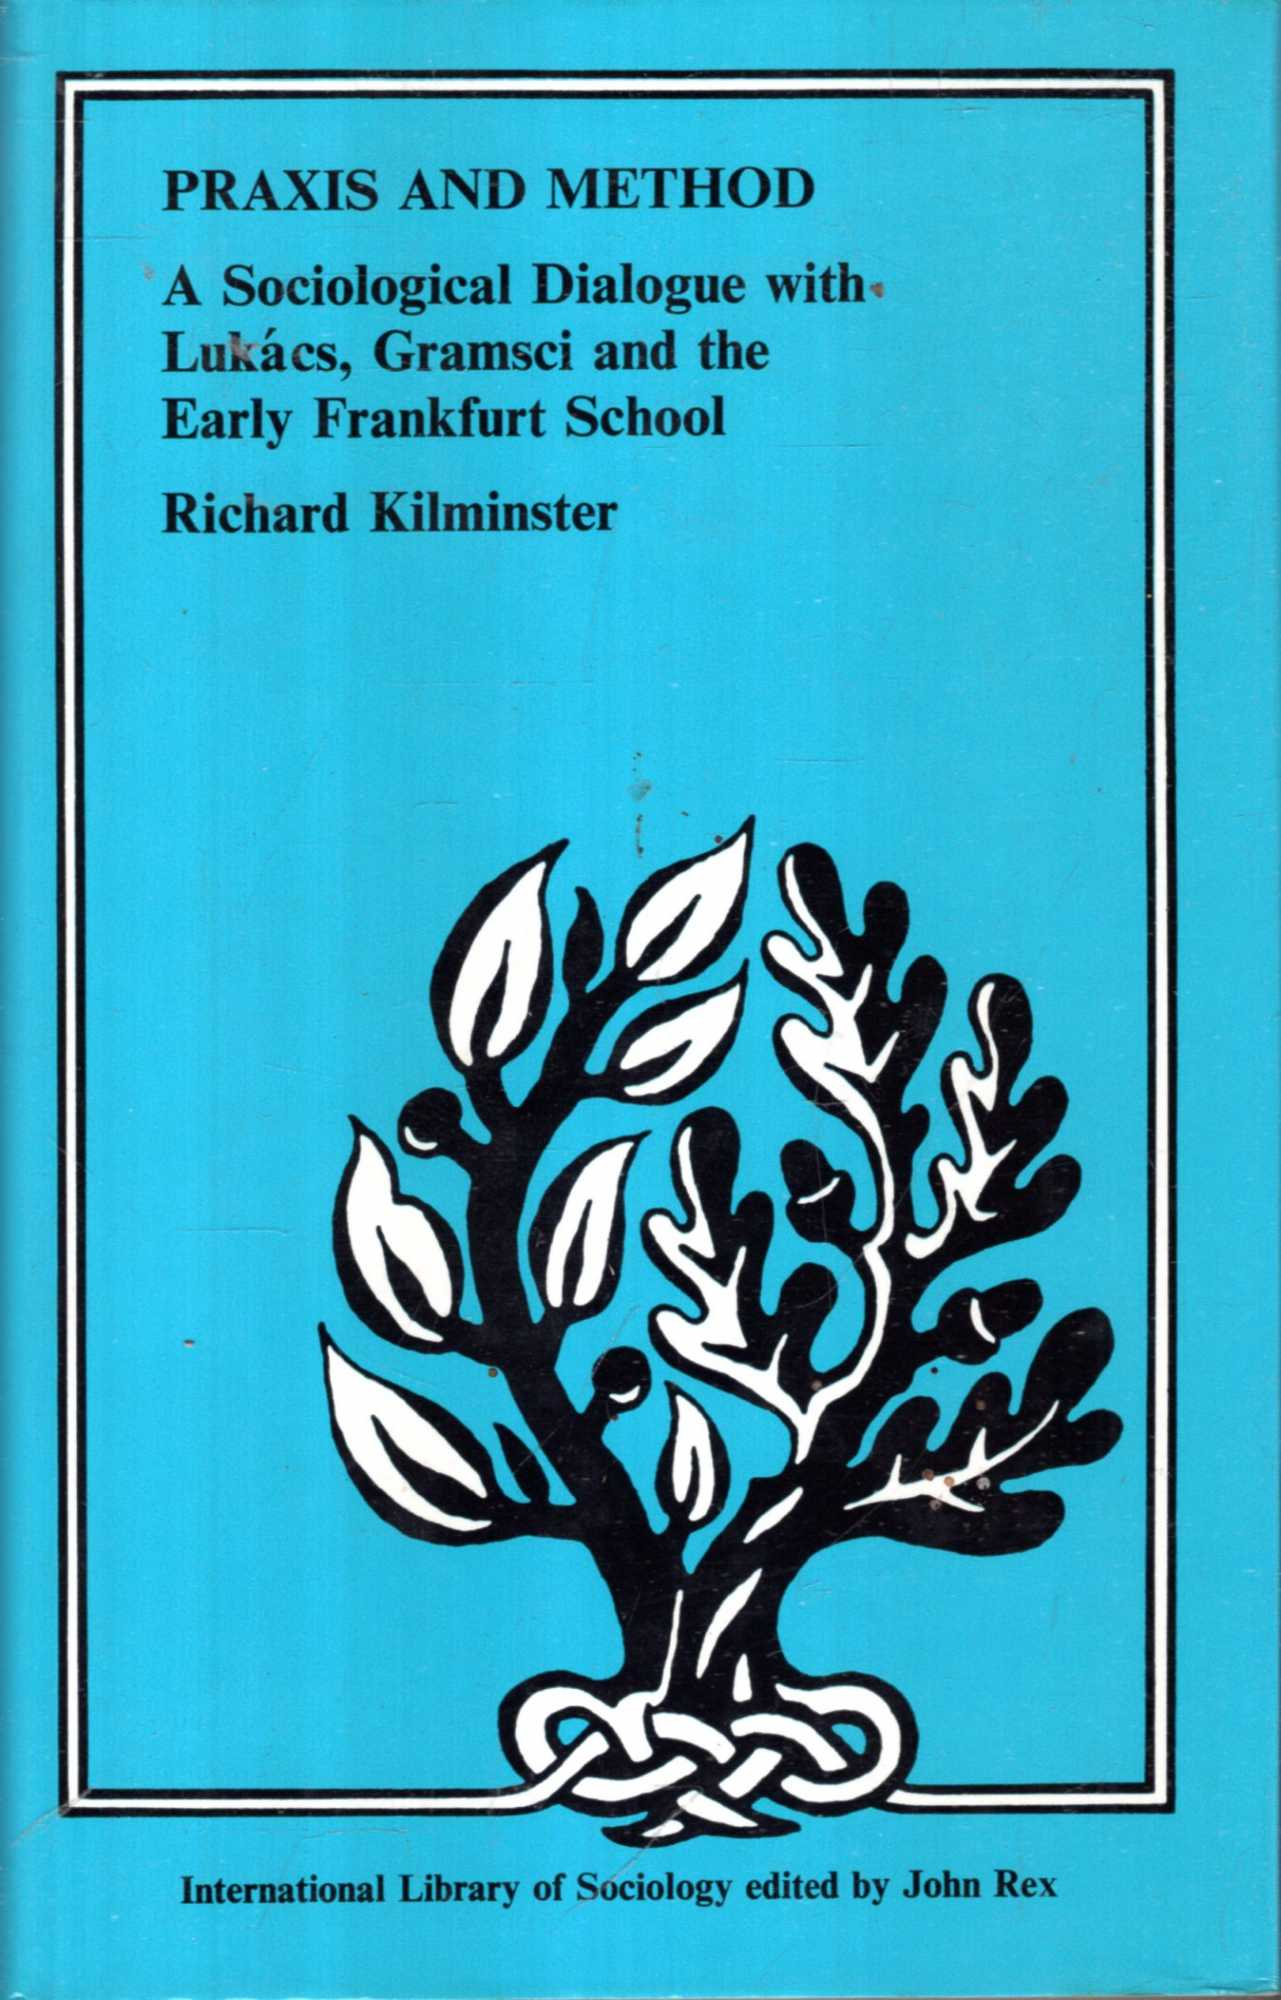 Image for Praxis and Method:A Sociological Dialogue with Lukács, Gramsci and the Early Frankfurt School (International Library of Sociology)